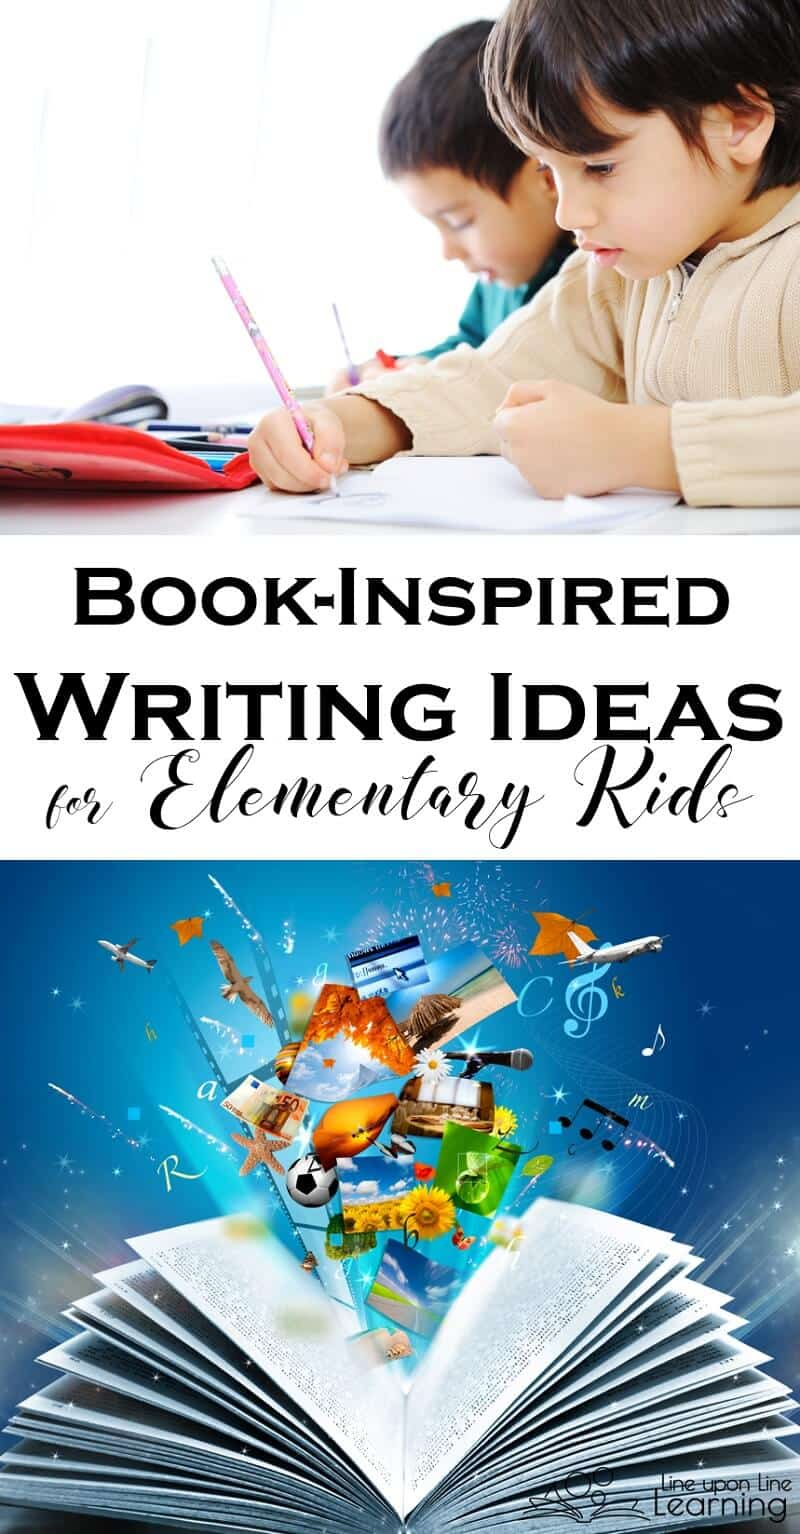 Elementary level kids are the perfect age for using picture books for writing prompt inspiration.